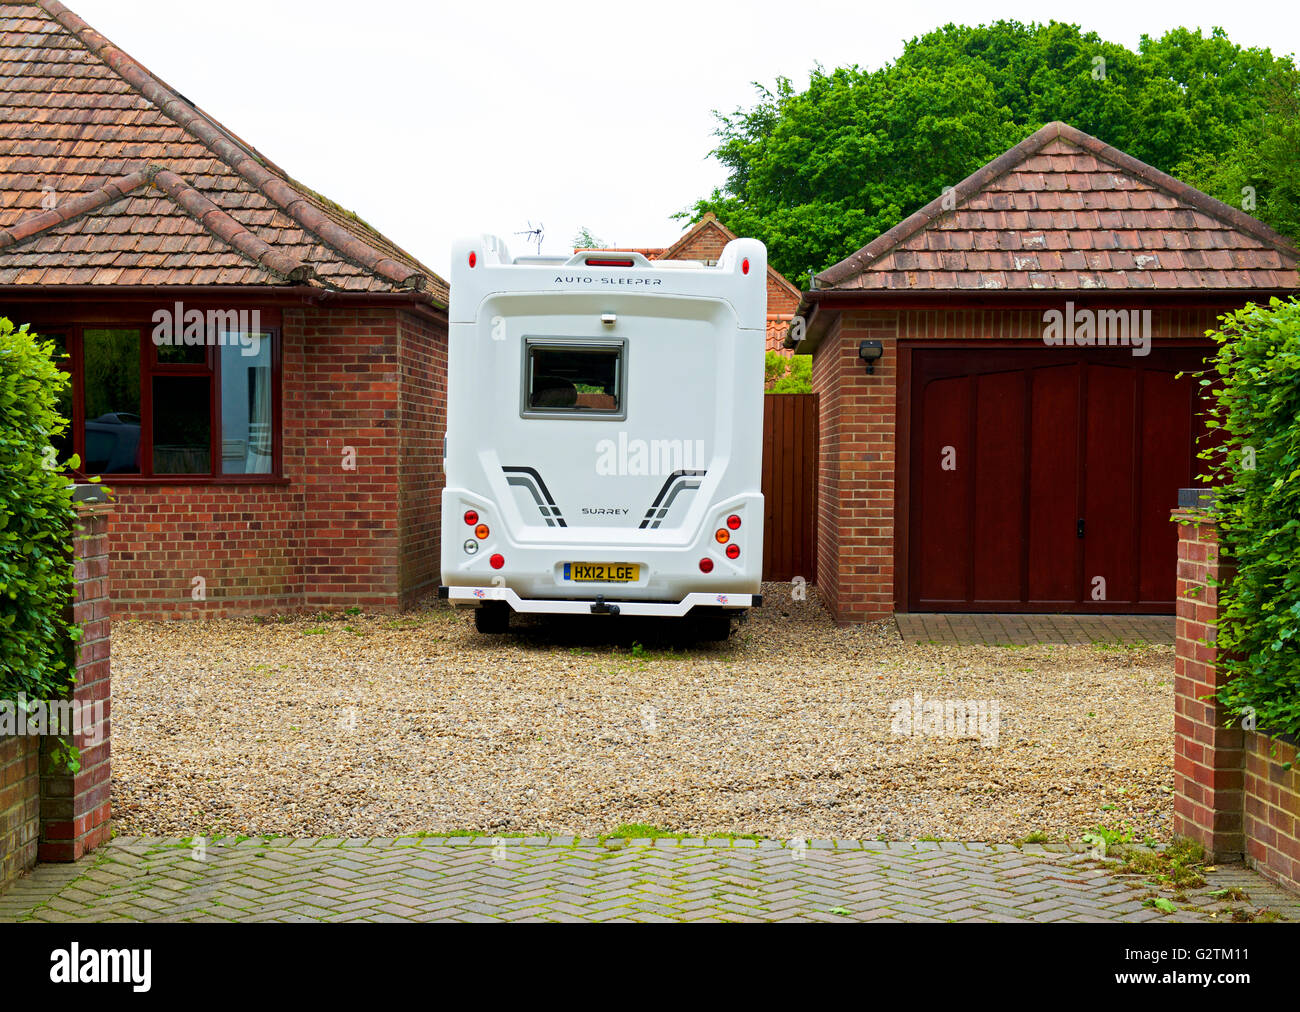 Motorhome parked in house driveway, England UK - Stock Image